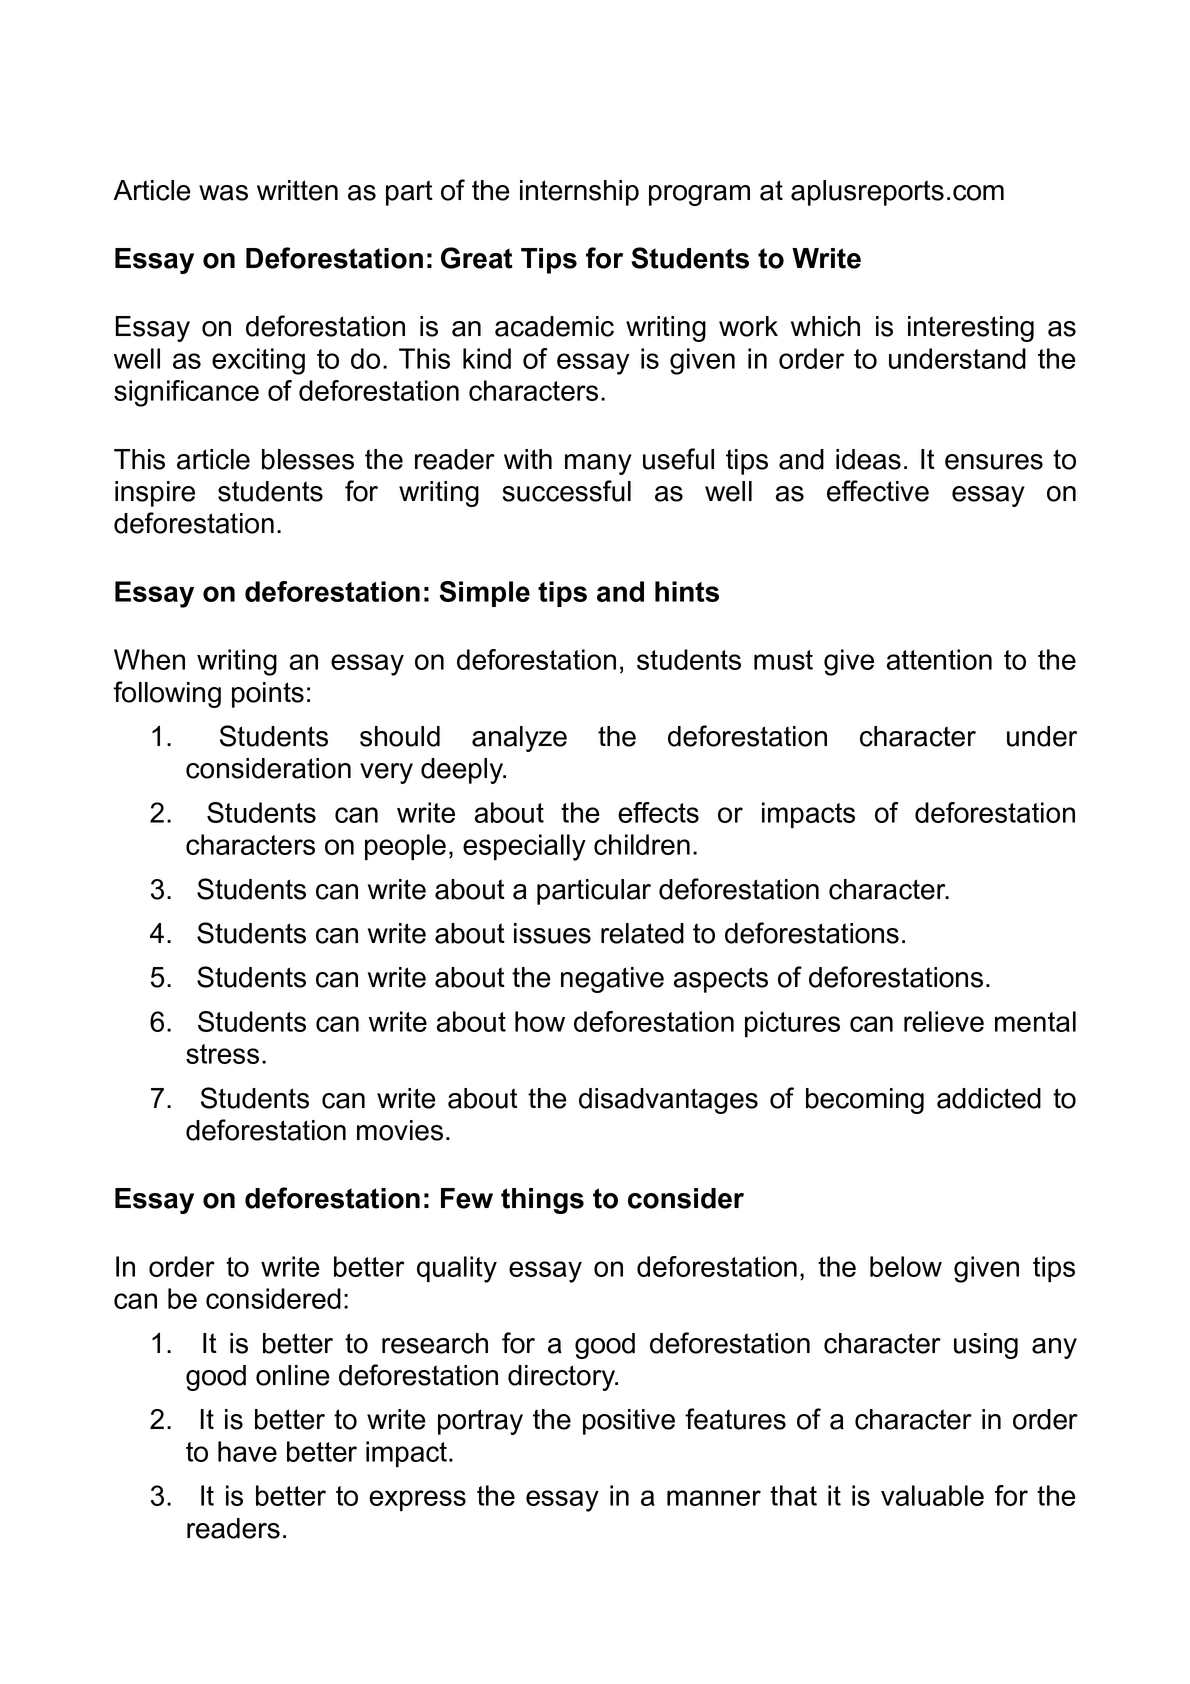 stress essays stress essays living a healthy lifestyle essay  calam atilde copy o essay on deforestation great tips for students to write